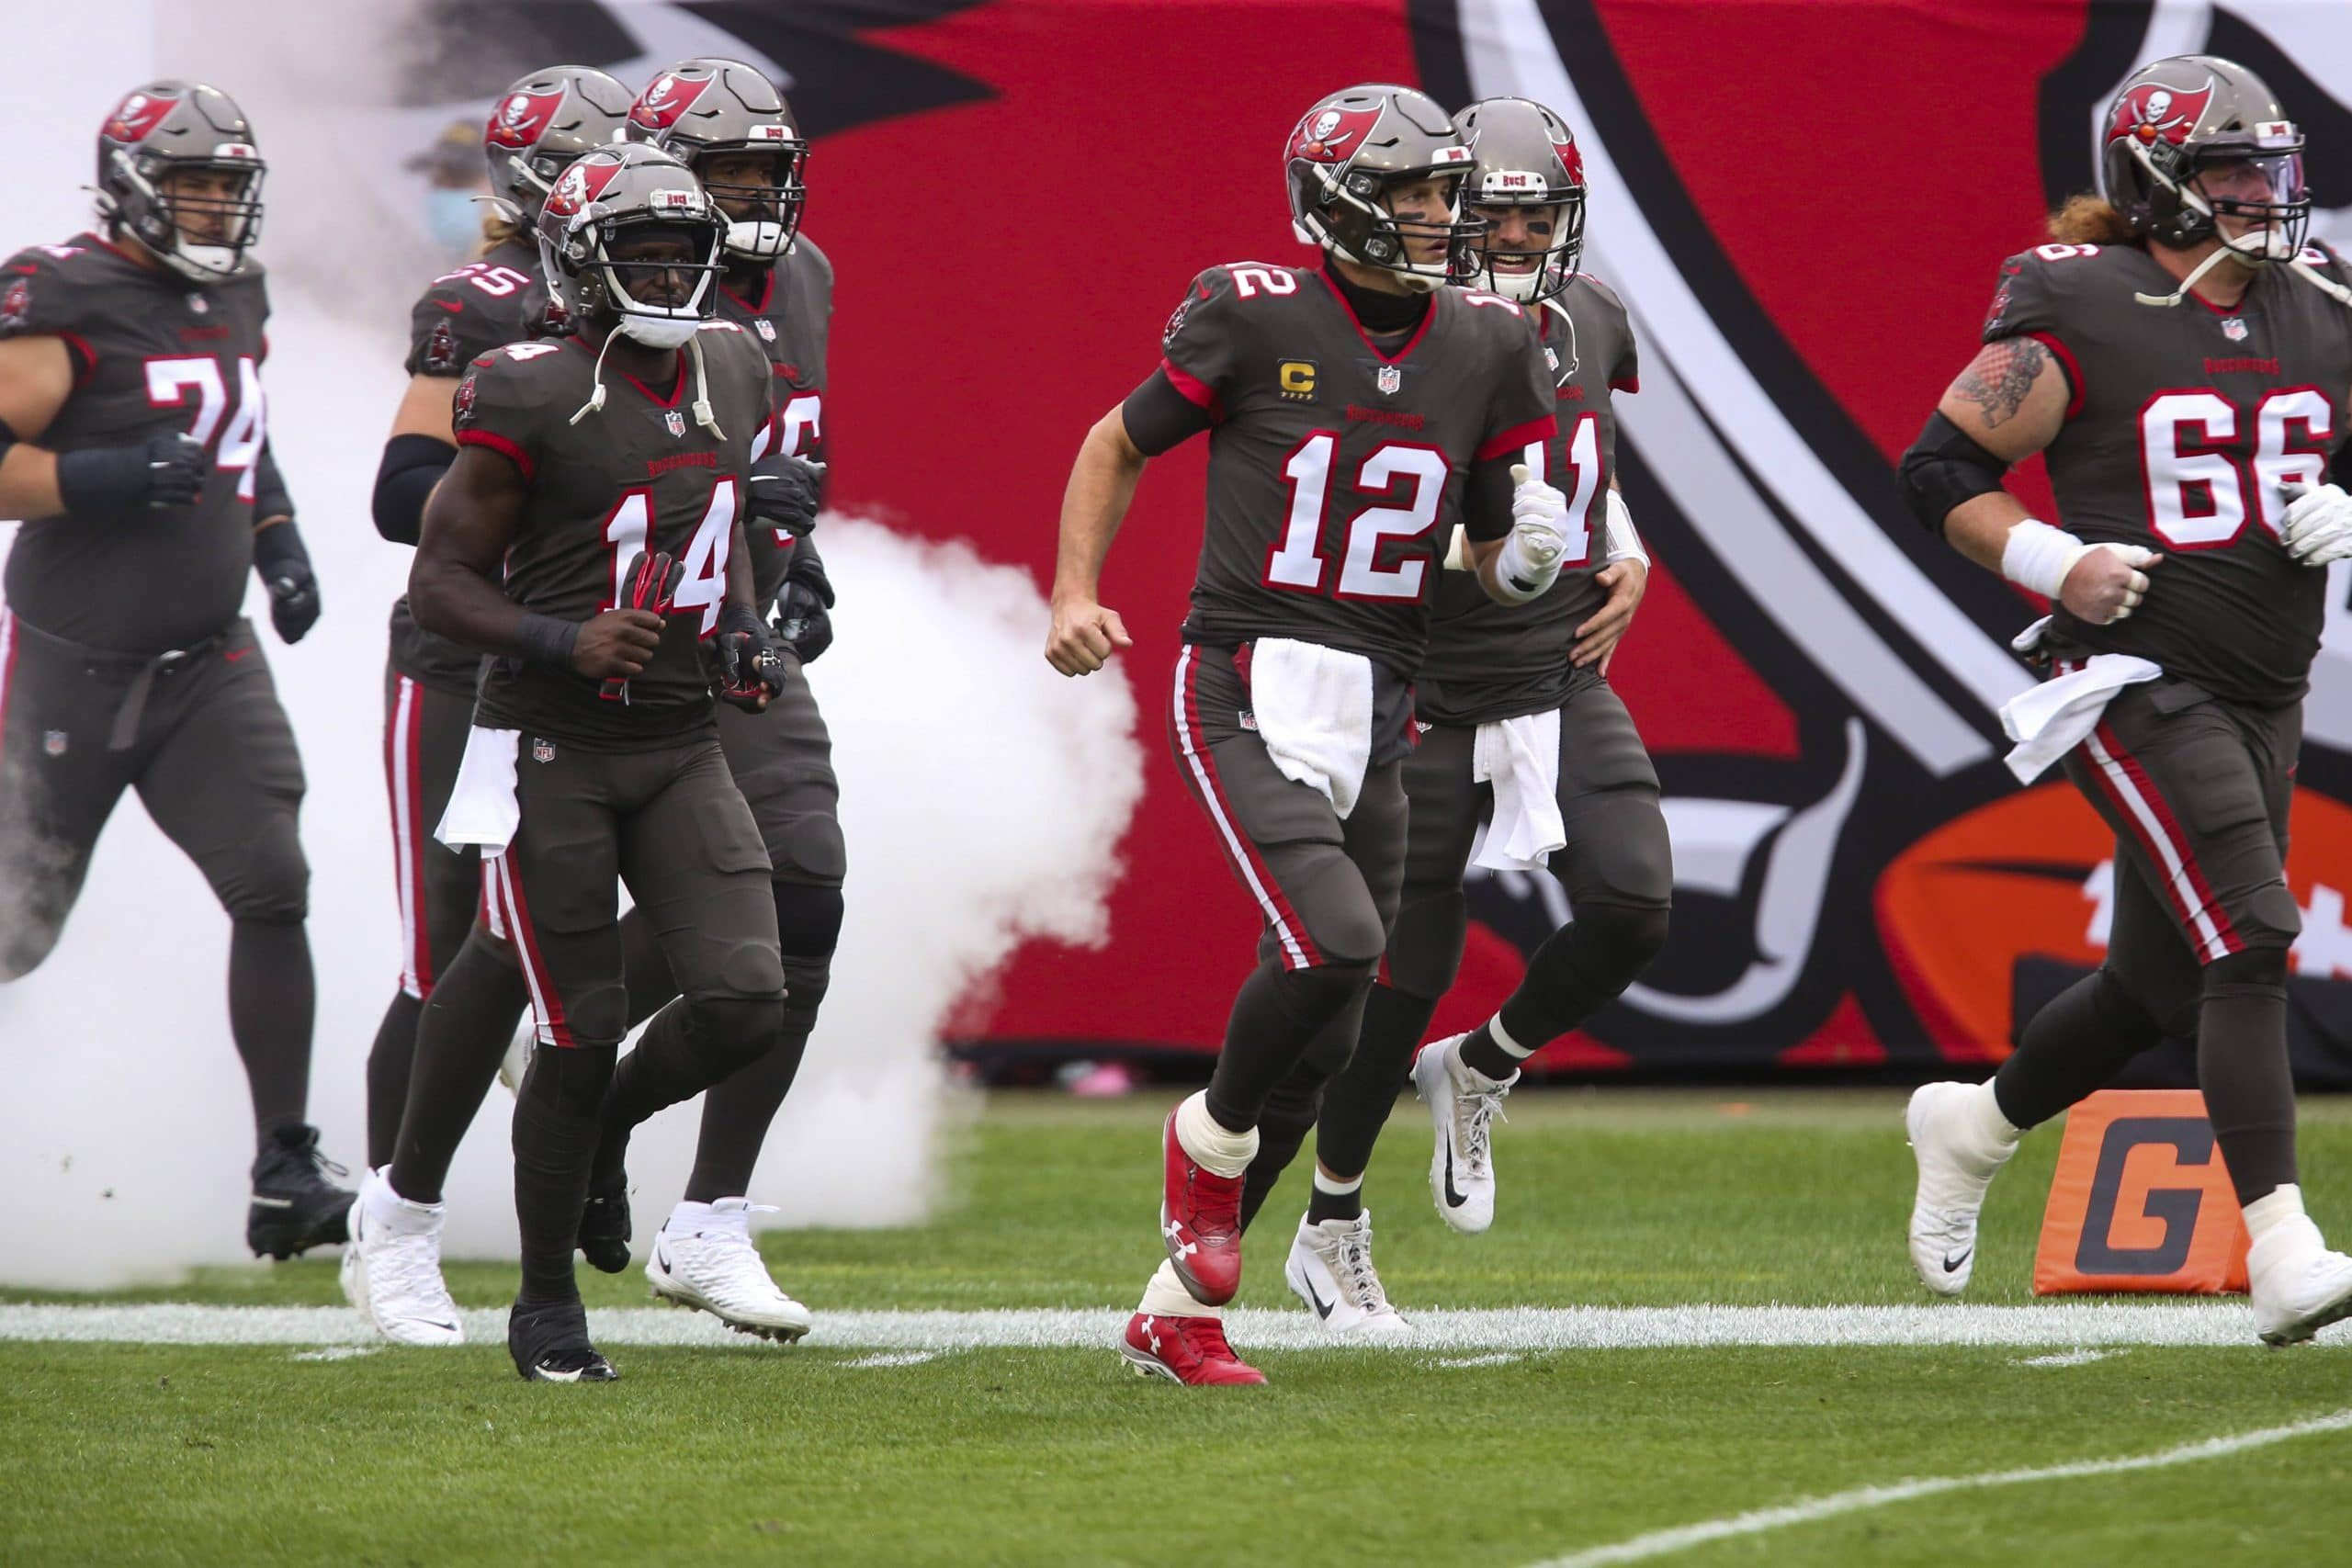 January 3, 2021, Tampa, Florida, USA: Tampa Bay Buccaneers quarterback Tom Brady (12) makes his way to the field during